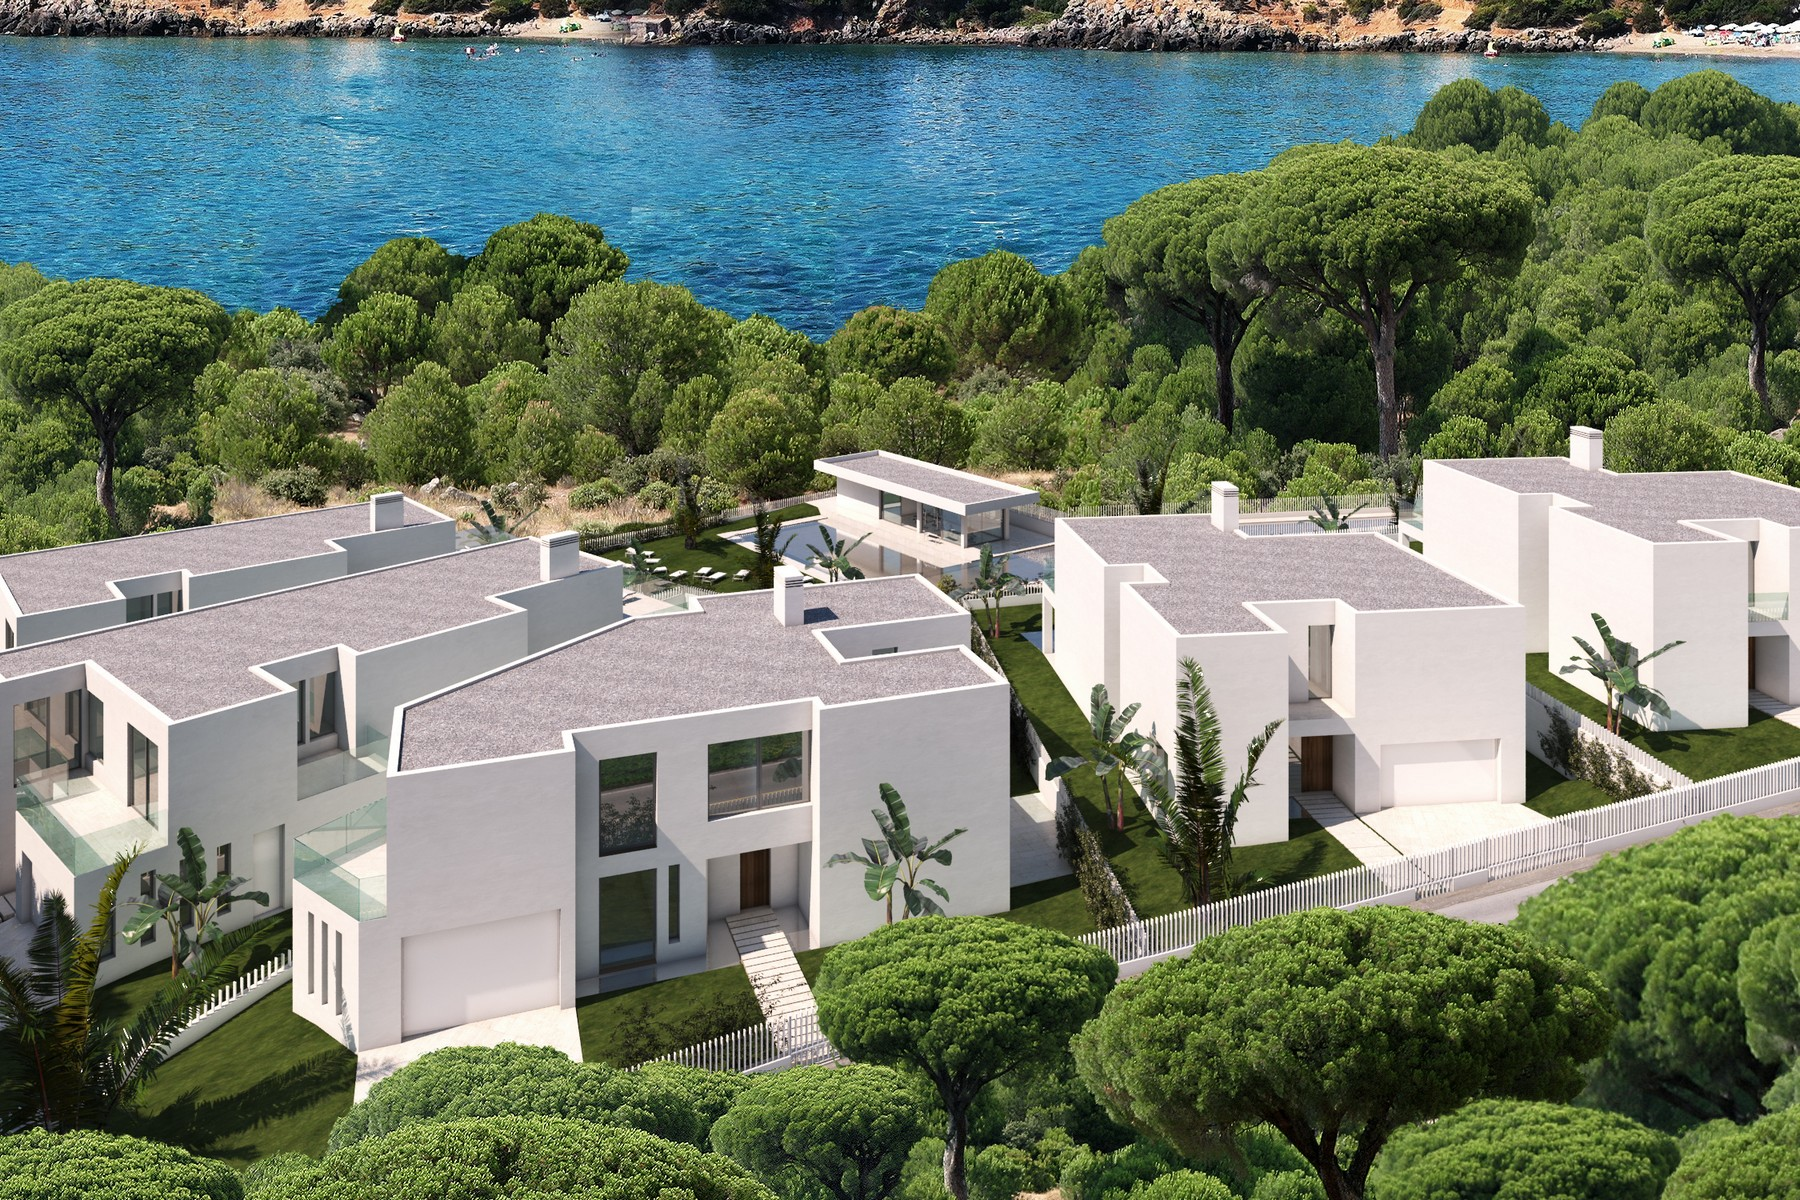 Villa per Vendita alle ore Brand New Luxury Villas Close To Sea Cala Lleña Santa Eulalia, Ibiza, 07850 Spagna